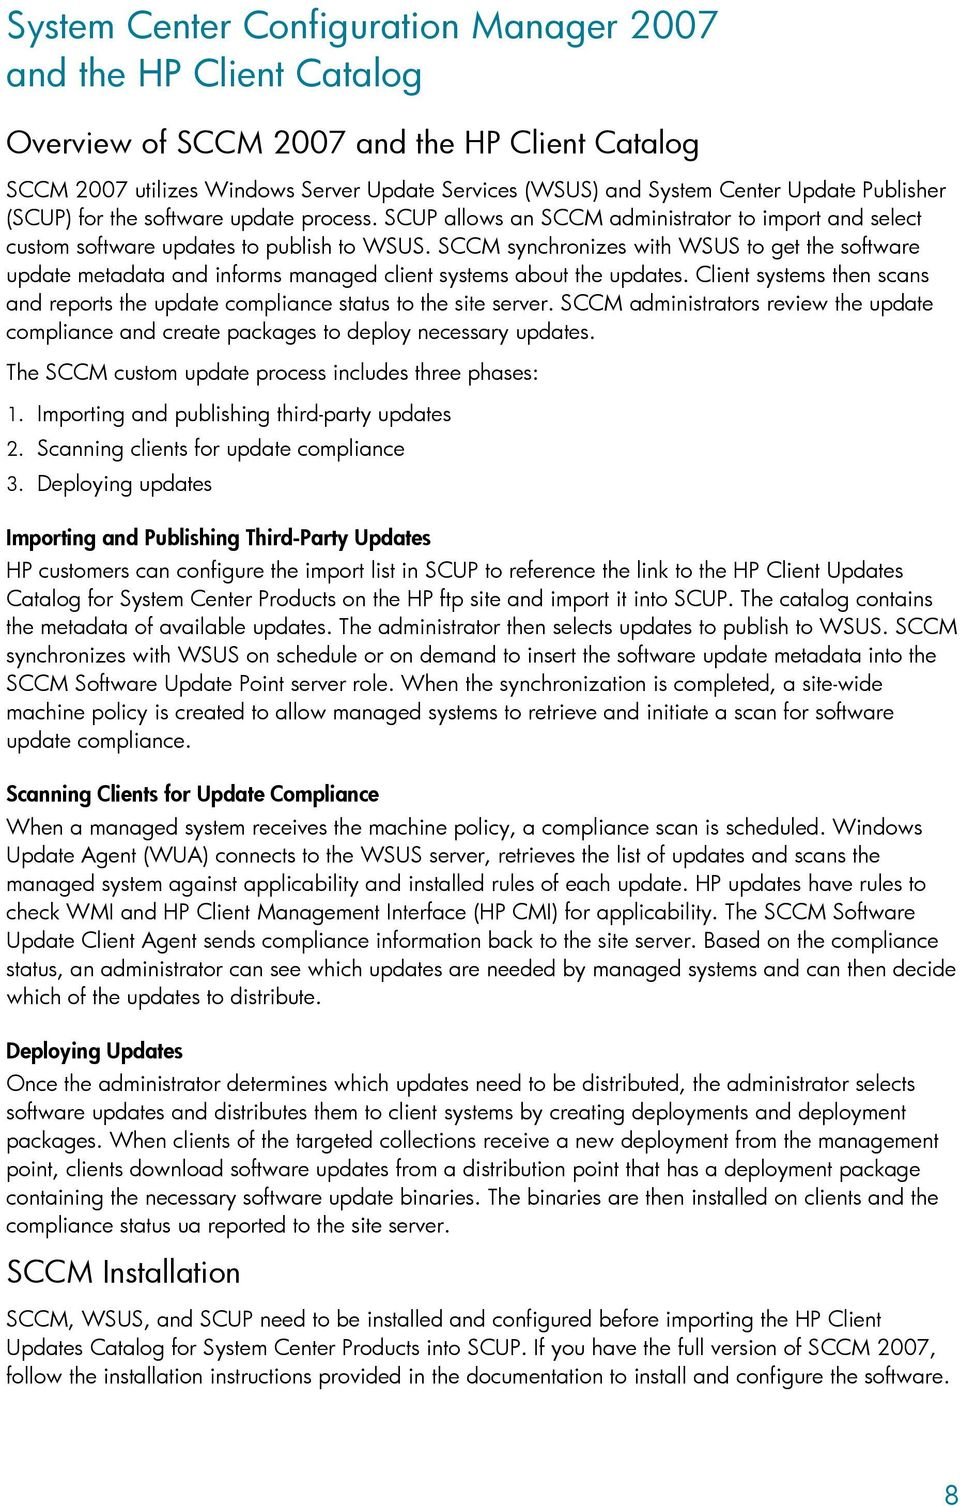 HP Client Catalog for Microsoft System Center Products - PDF